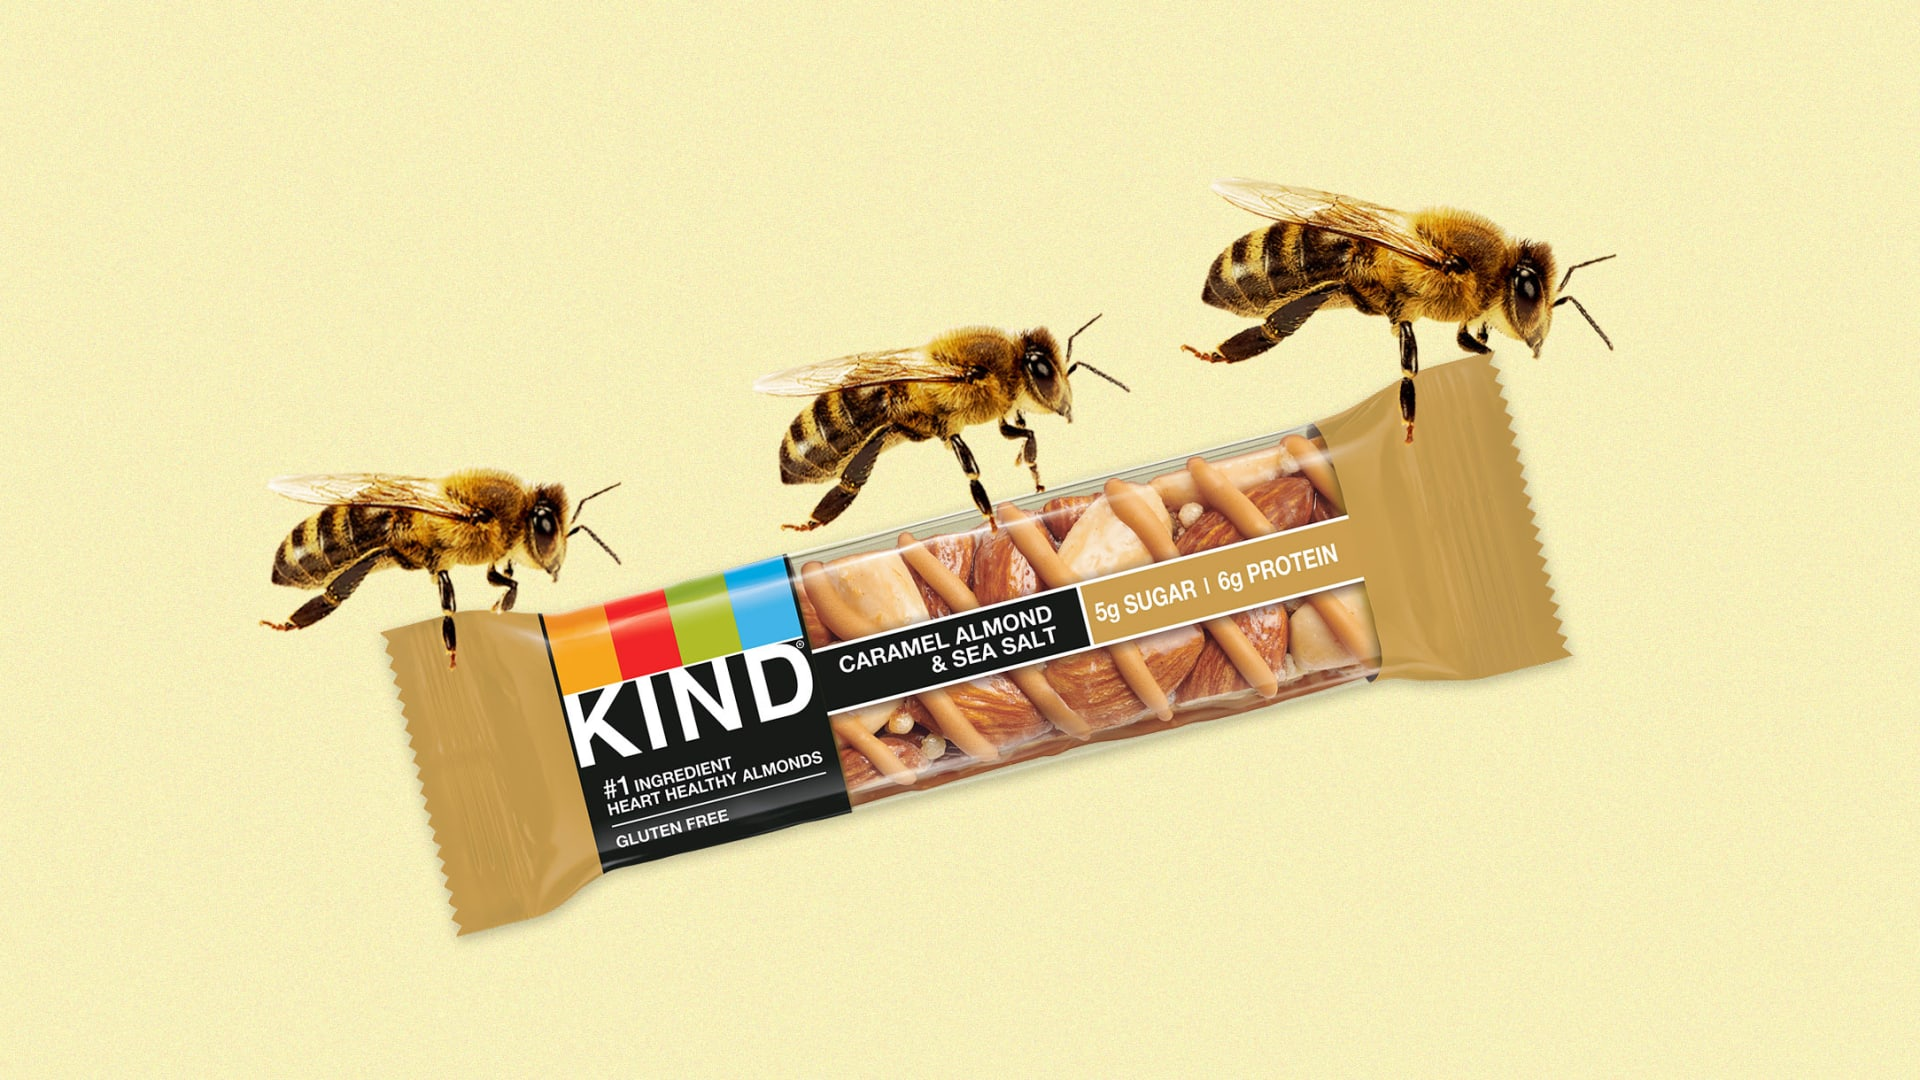 To Protect Its Supply, Kind Speaks for the Bees